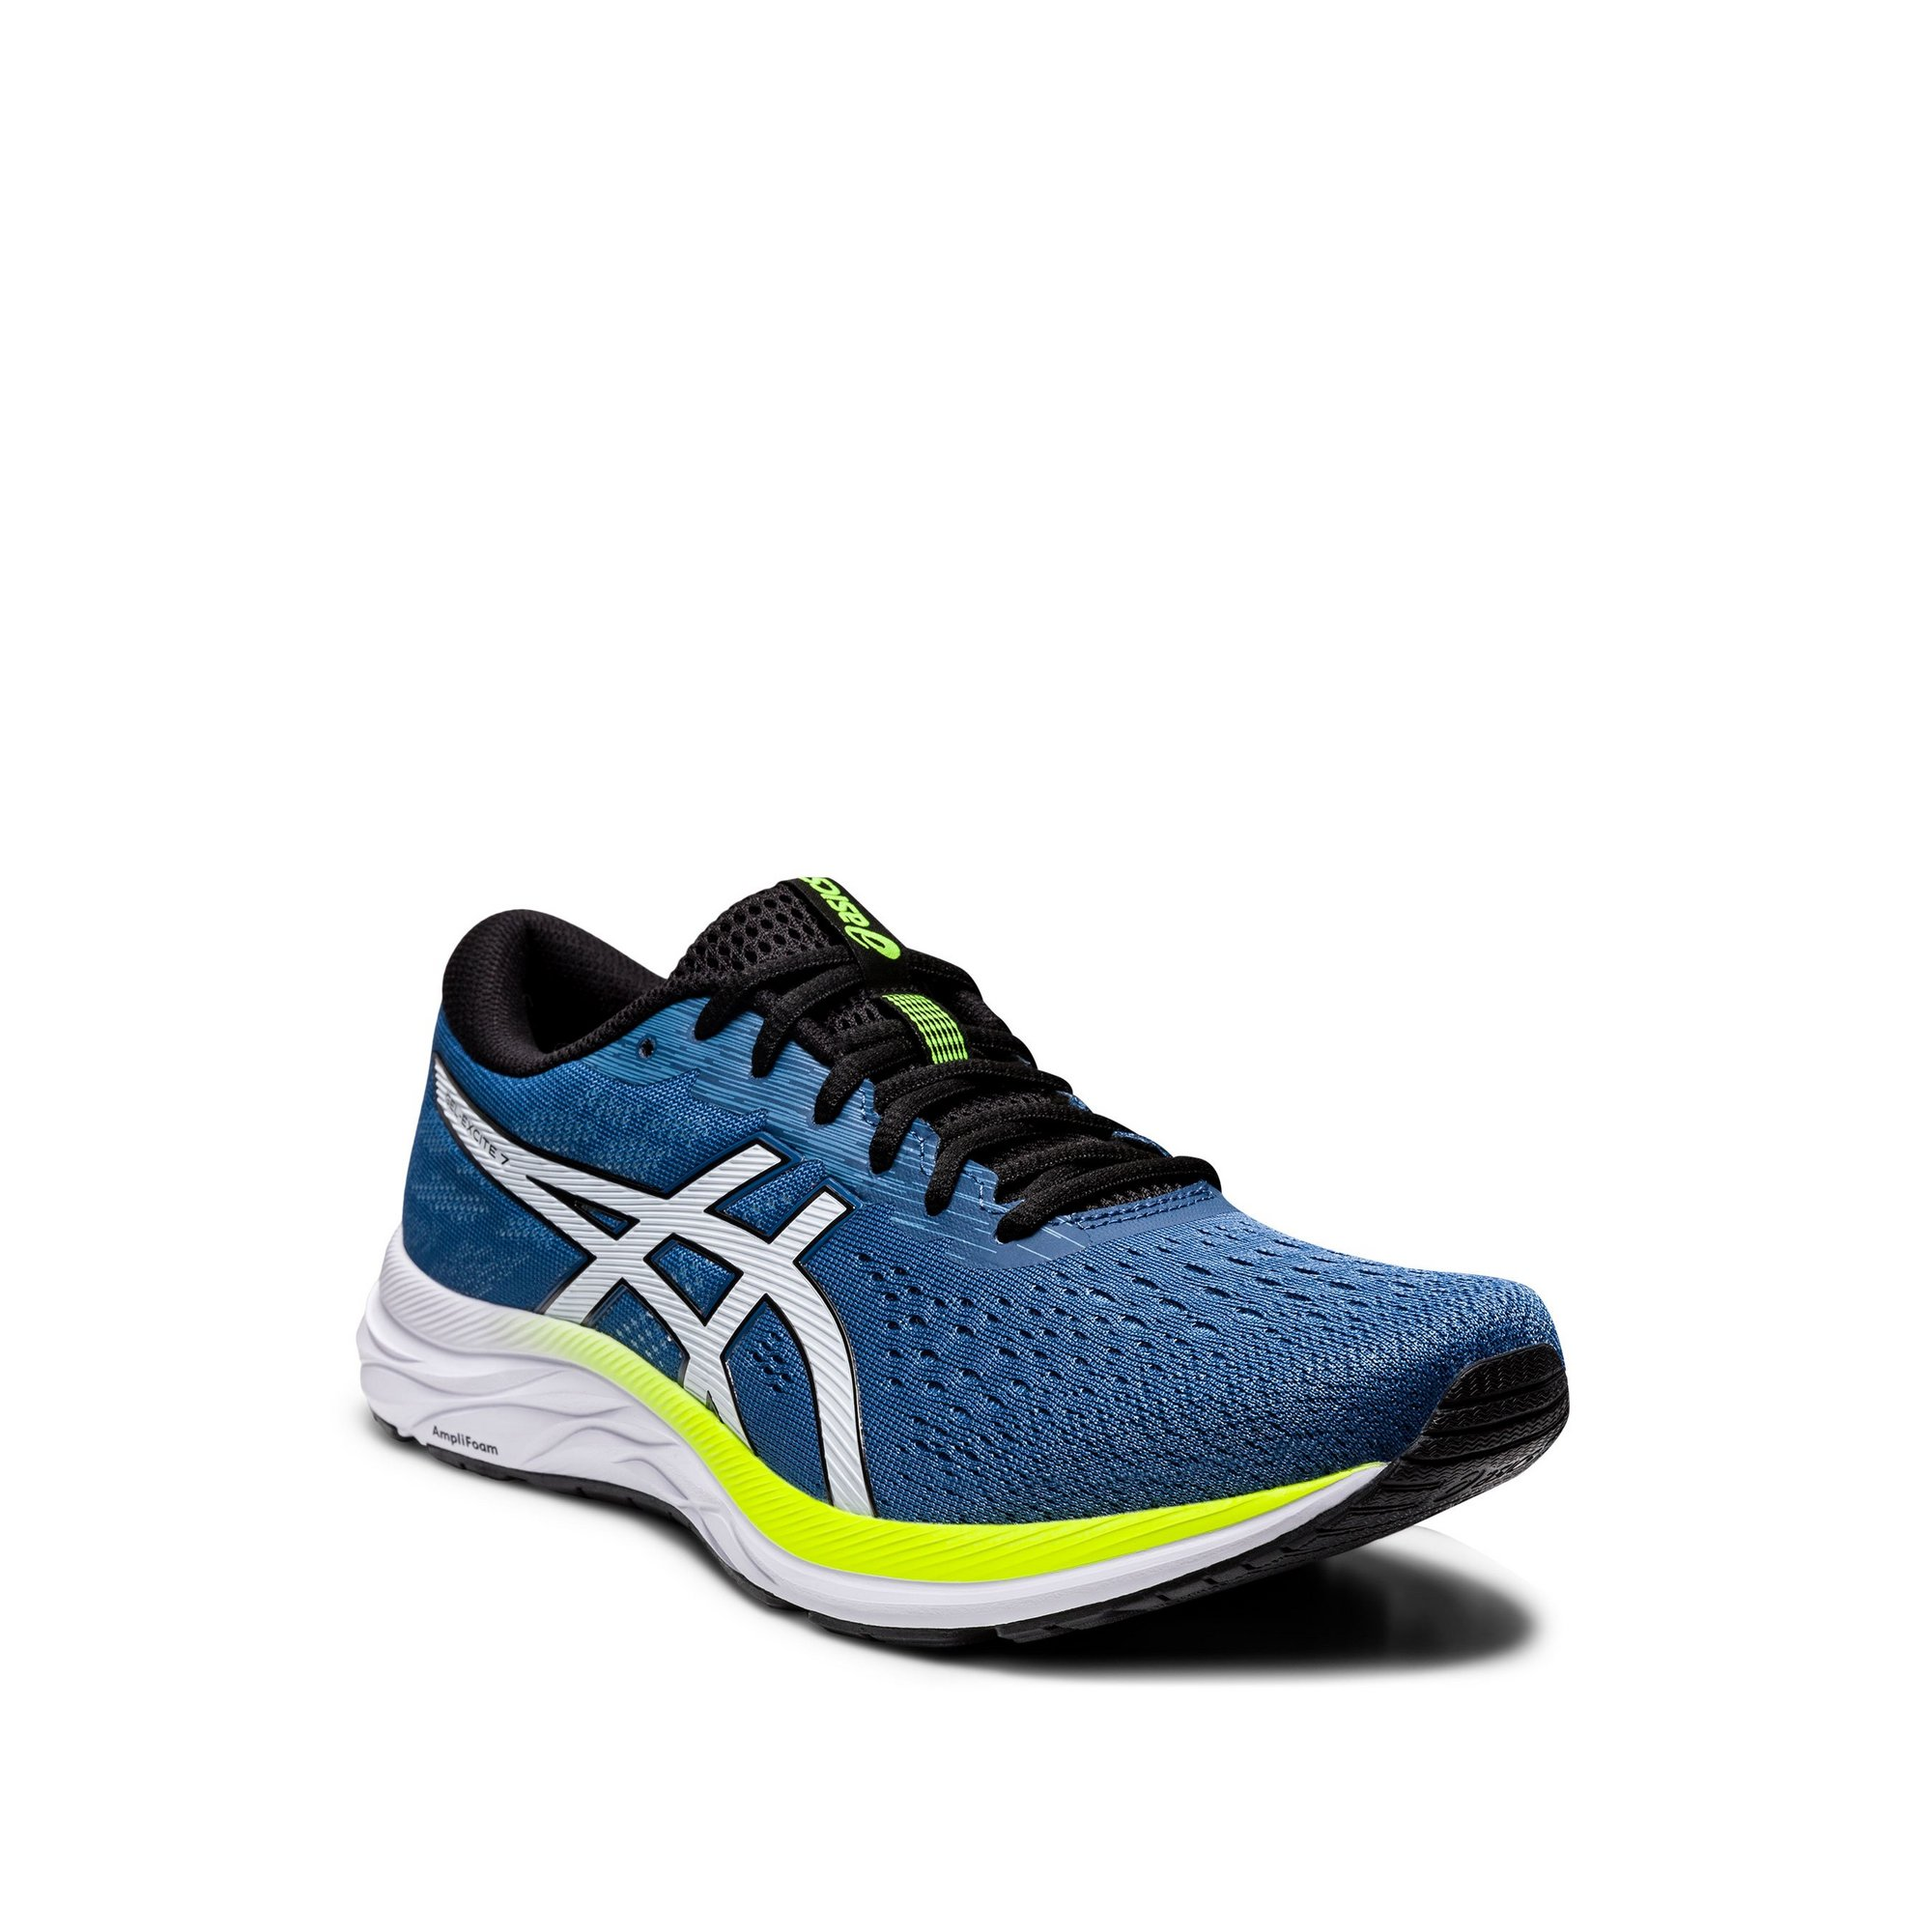 Image of Asics Gel Excite 7 Trainers